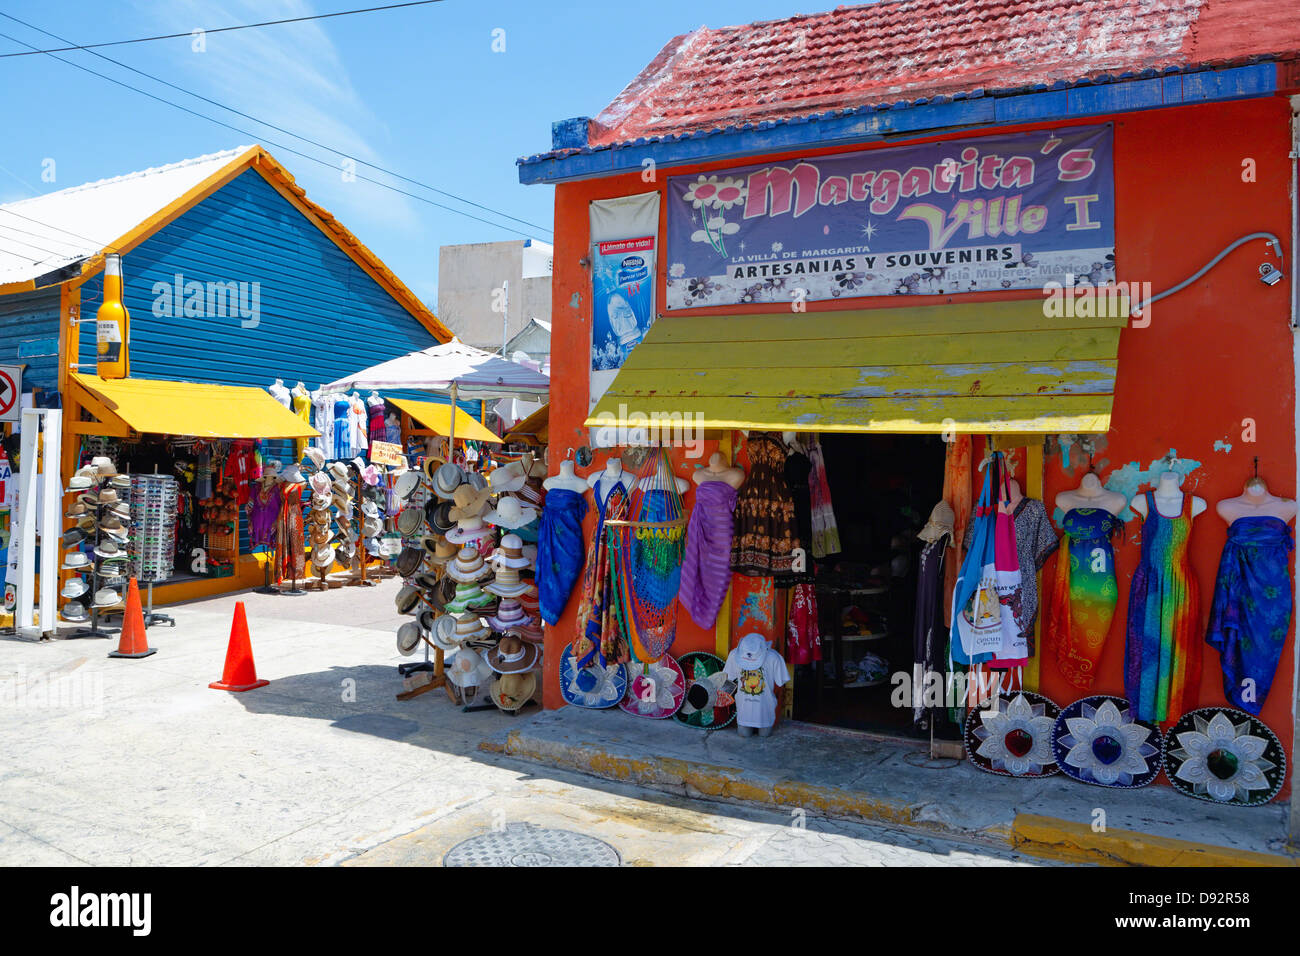 Colorful Shops in Isla Mujeres, Quinatana Roo, Mexico - Stock Image